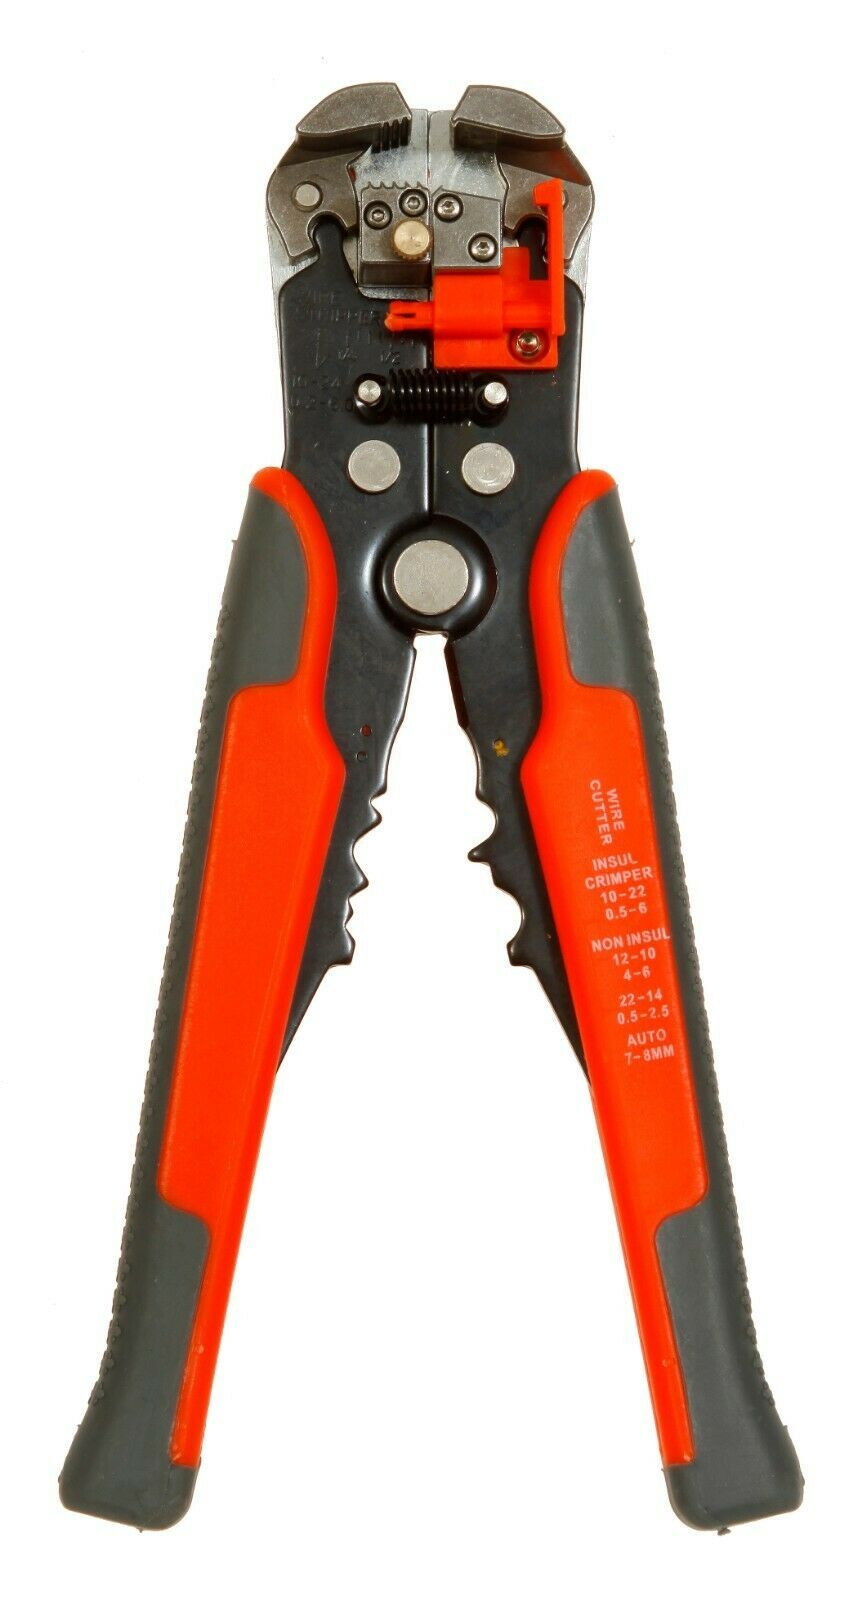 Details about  /Electric Wire Crimping Tool Multi-Tool Insulated Stripper Cutter Crimper Pliers